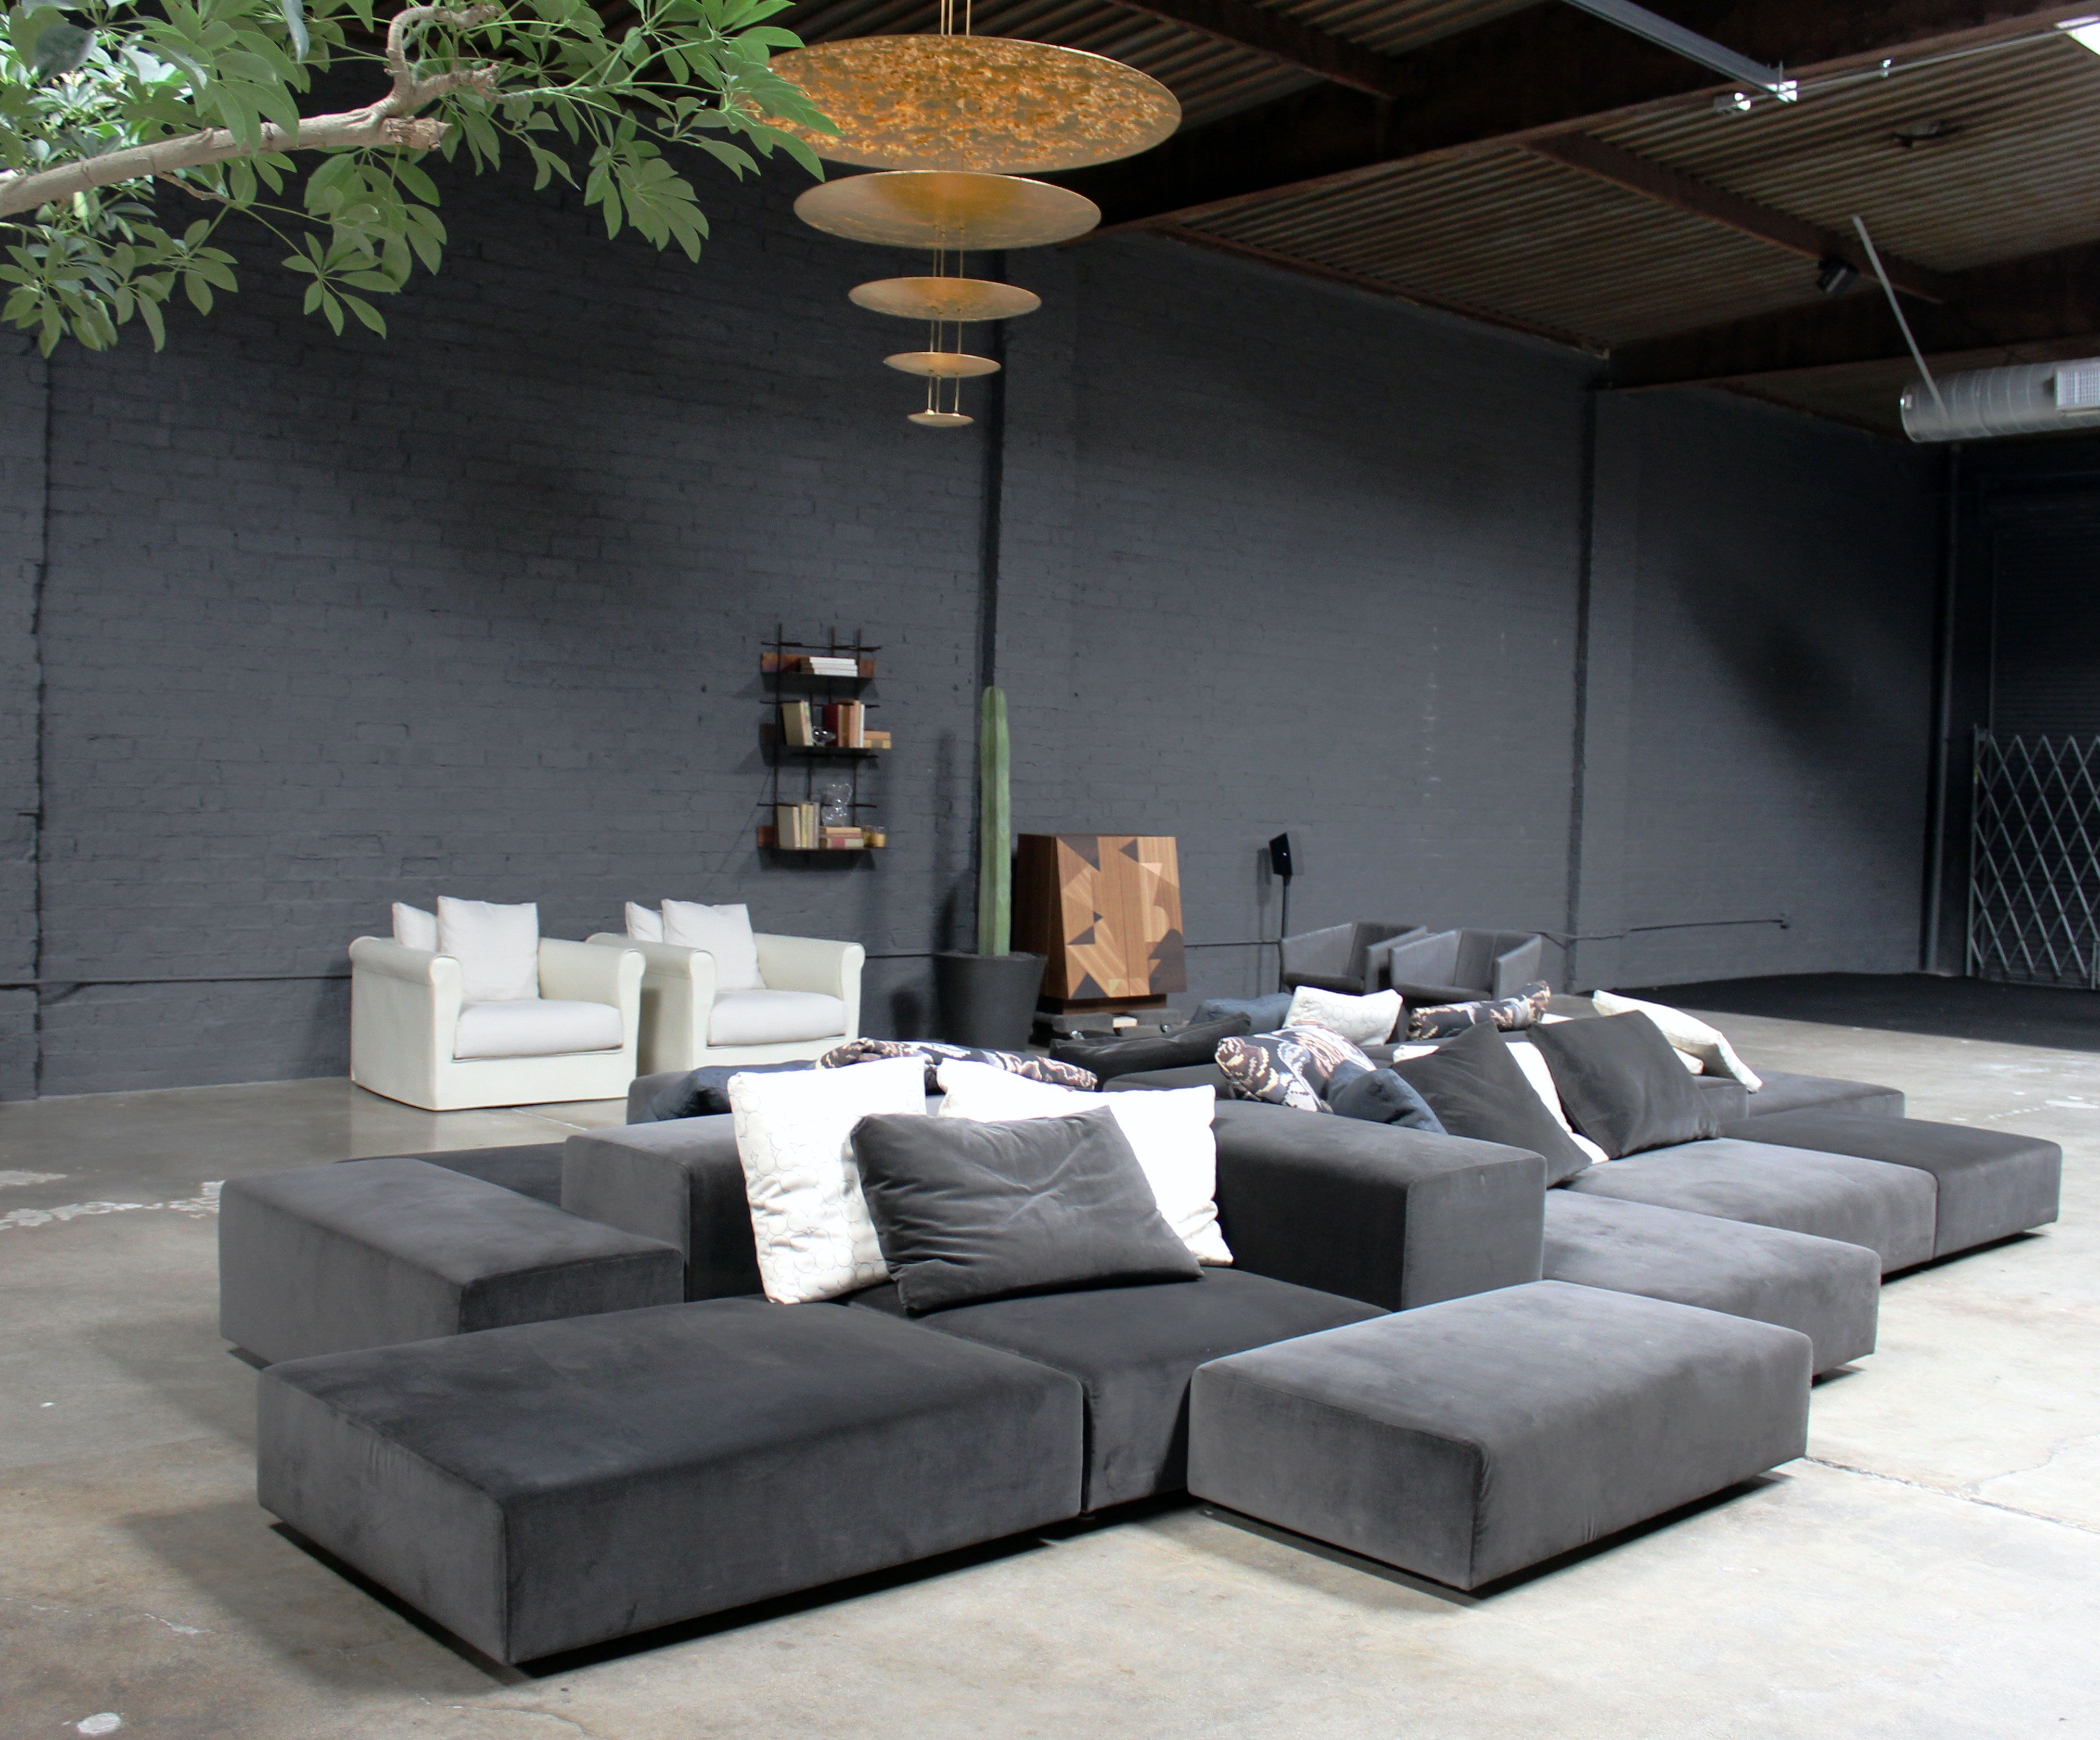 Extra Wall Sofa by Living Divani and Macchina Dela Luce Pendant by